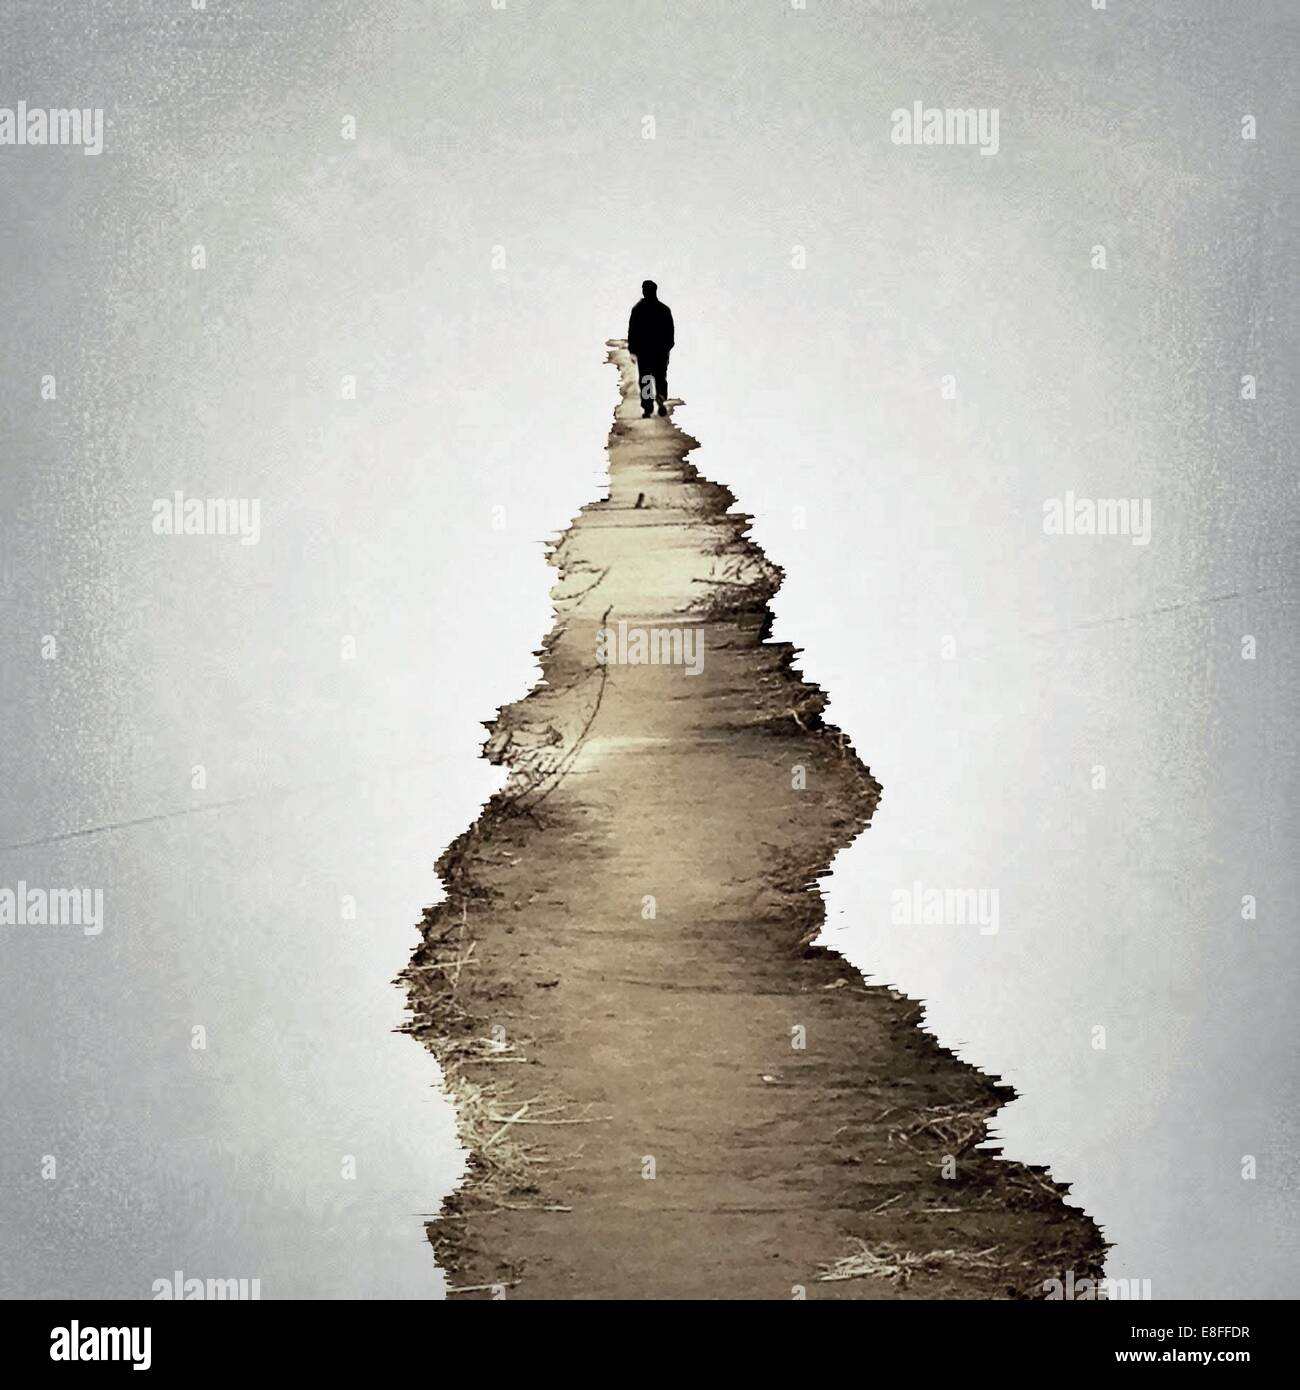 Man walking along a footpath - Stock Image